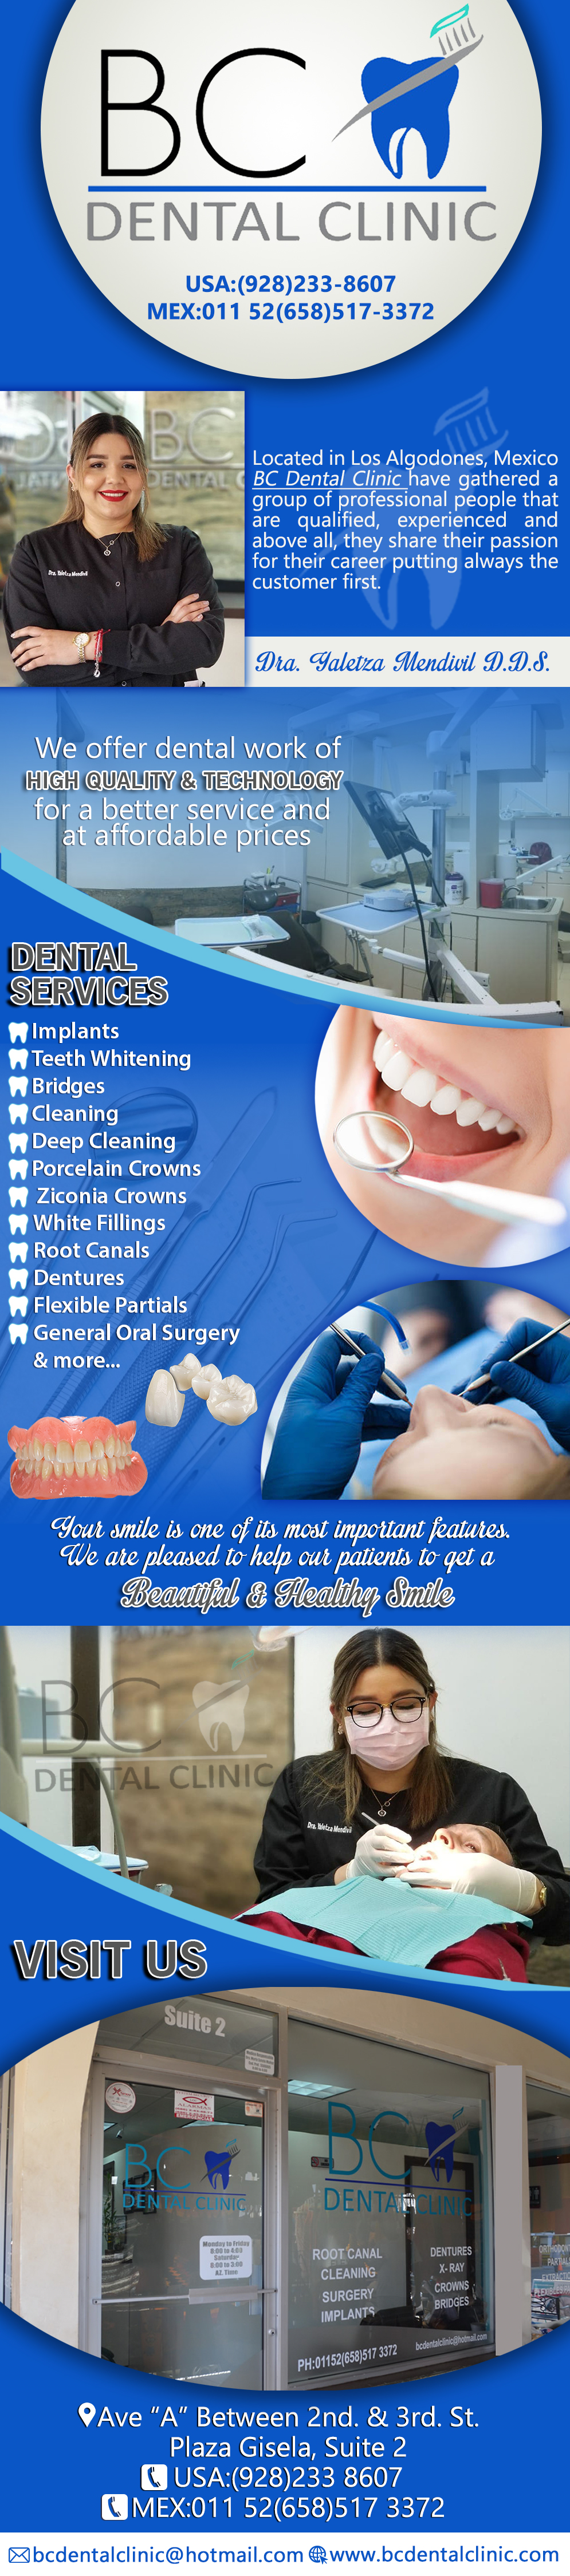 BC Dental Clinic  Yaletza Mendivil DDS in Algodones  in Algodones  General dentistry, cosmetic dentistry, periodontics, endodontics, orthodontics and dental implants. Bridges °X-Rays °Porcelain Veneers °Metal Crowns °Dental Bonding °Deep Cleaning °Denture Repair °Traditional Acrylic Dentures °Prescriptions °Root Canals °Metal Bridges °White Fillings °Root Canal Therapy Relines (Hard or Soft) °General Oral Surgeries °Porcelain Crowns °Zirconia Crowns °Flexible Partials °Composite Posts °Teeth Whitening °Extractions °Flexible Parials Implants °Porcelain Veneers °Wisdom Tooth Extractions °Metal Posts °Traditional Cleaning °MetalAcrylic Partials °Immediate Upper and Lower Dentures (Alveoplasty)             general dentistry, cosmetic dentistry, periodontics, endodontics, orthodontics and dental implants. Bridges °X-Rays °Porcelain Veneers °Metal Crowns °Dental Bonding °Deep Cleaning °Denture Repair °Traditional Acrylic Dentures °Prescriptions °Root Canals °Metal Bridges °White Fillings °Root Canal Therapy Relines (Hard or Soft) °General Oral Surgeries °Porcelain Crowns °Flexible Partials °Composite Posts °Teeth Whitening °Extractions °Flexible Parials Implants °Porcelain Veneers °Wisdom Tooth Extractions °Metal Posts °Traditional Cleaning °MetalAcrylic Partials °Immediate Upper and Lower Dentures (Alveoplasty)